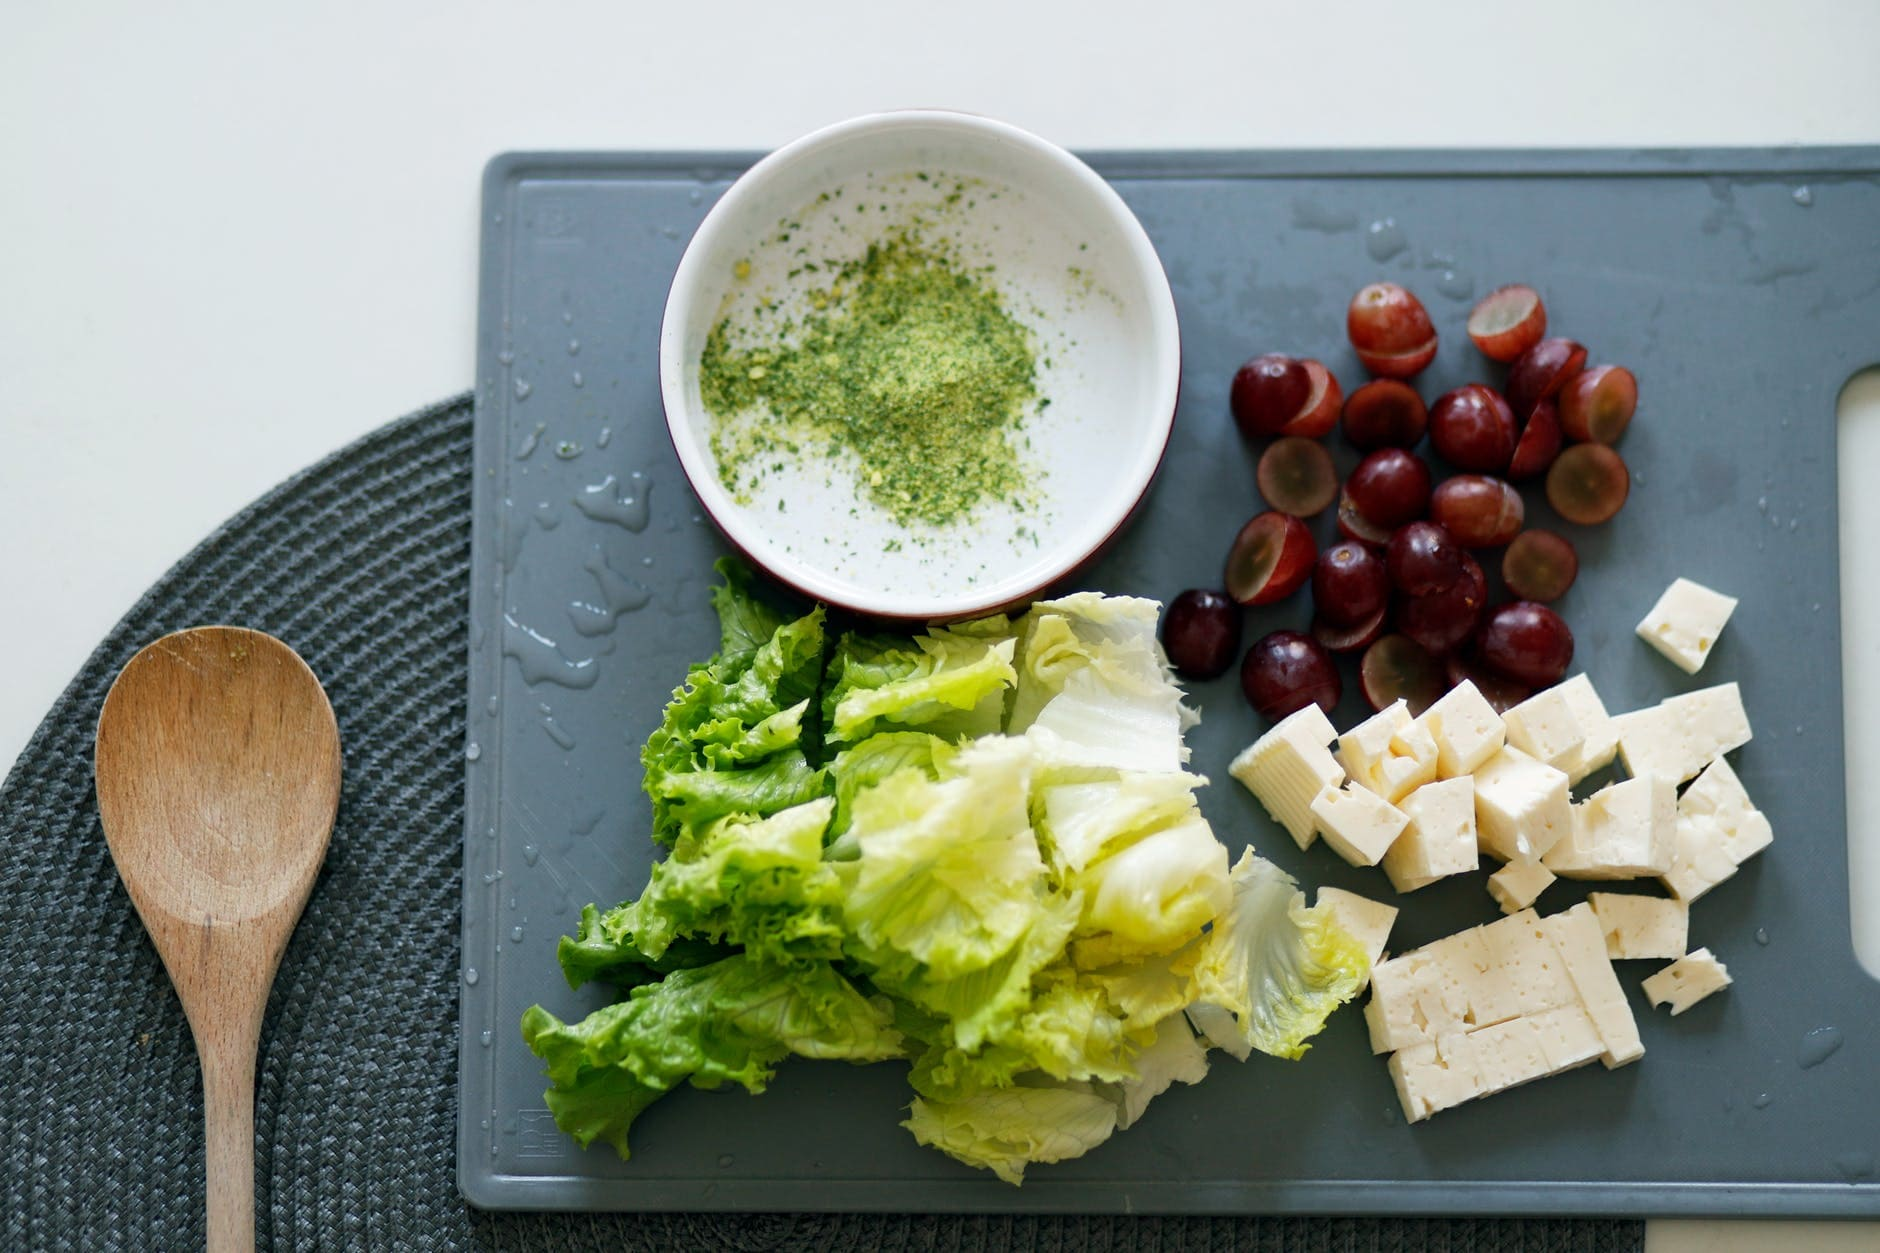 How to make a white cheese salad for men